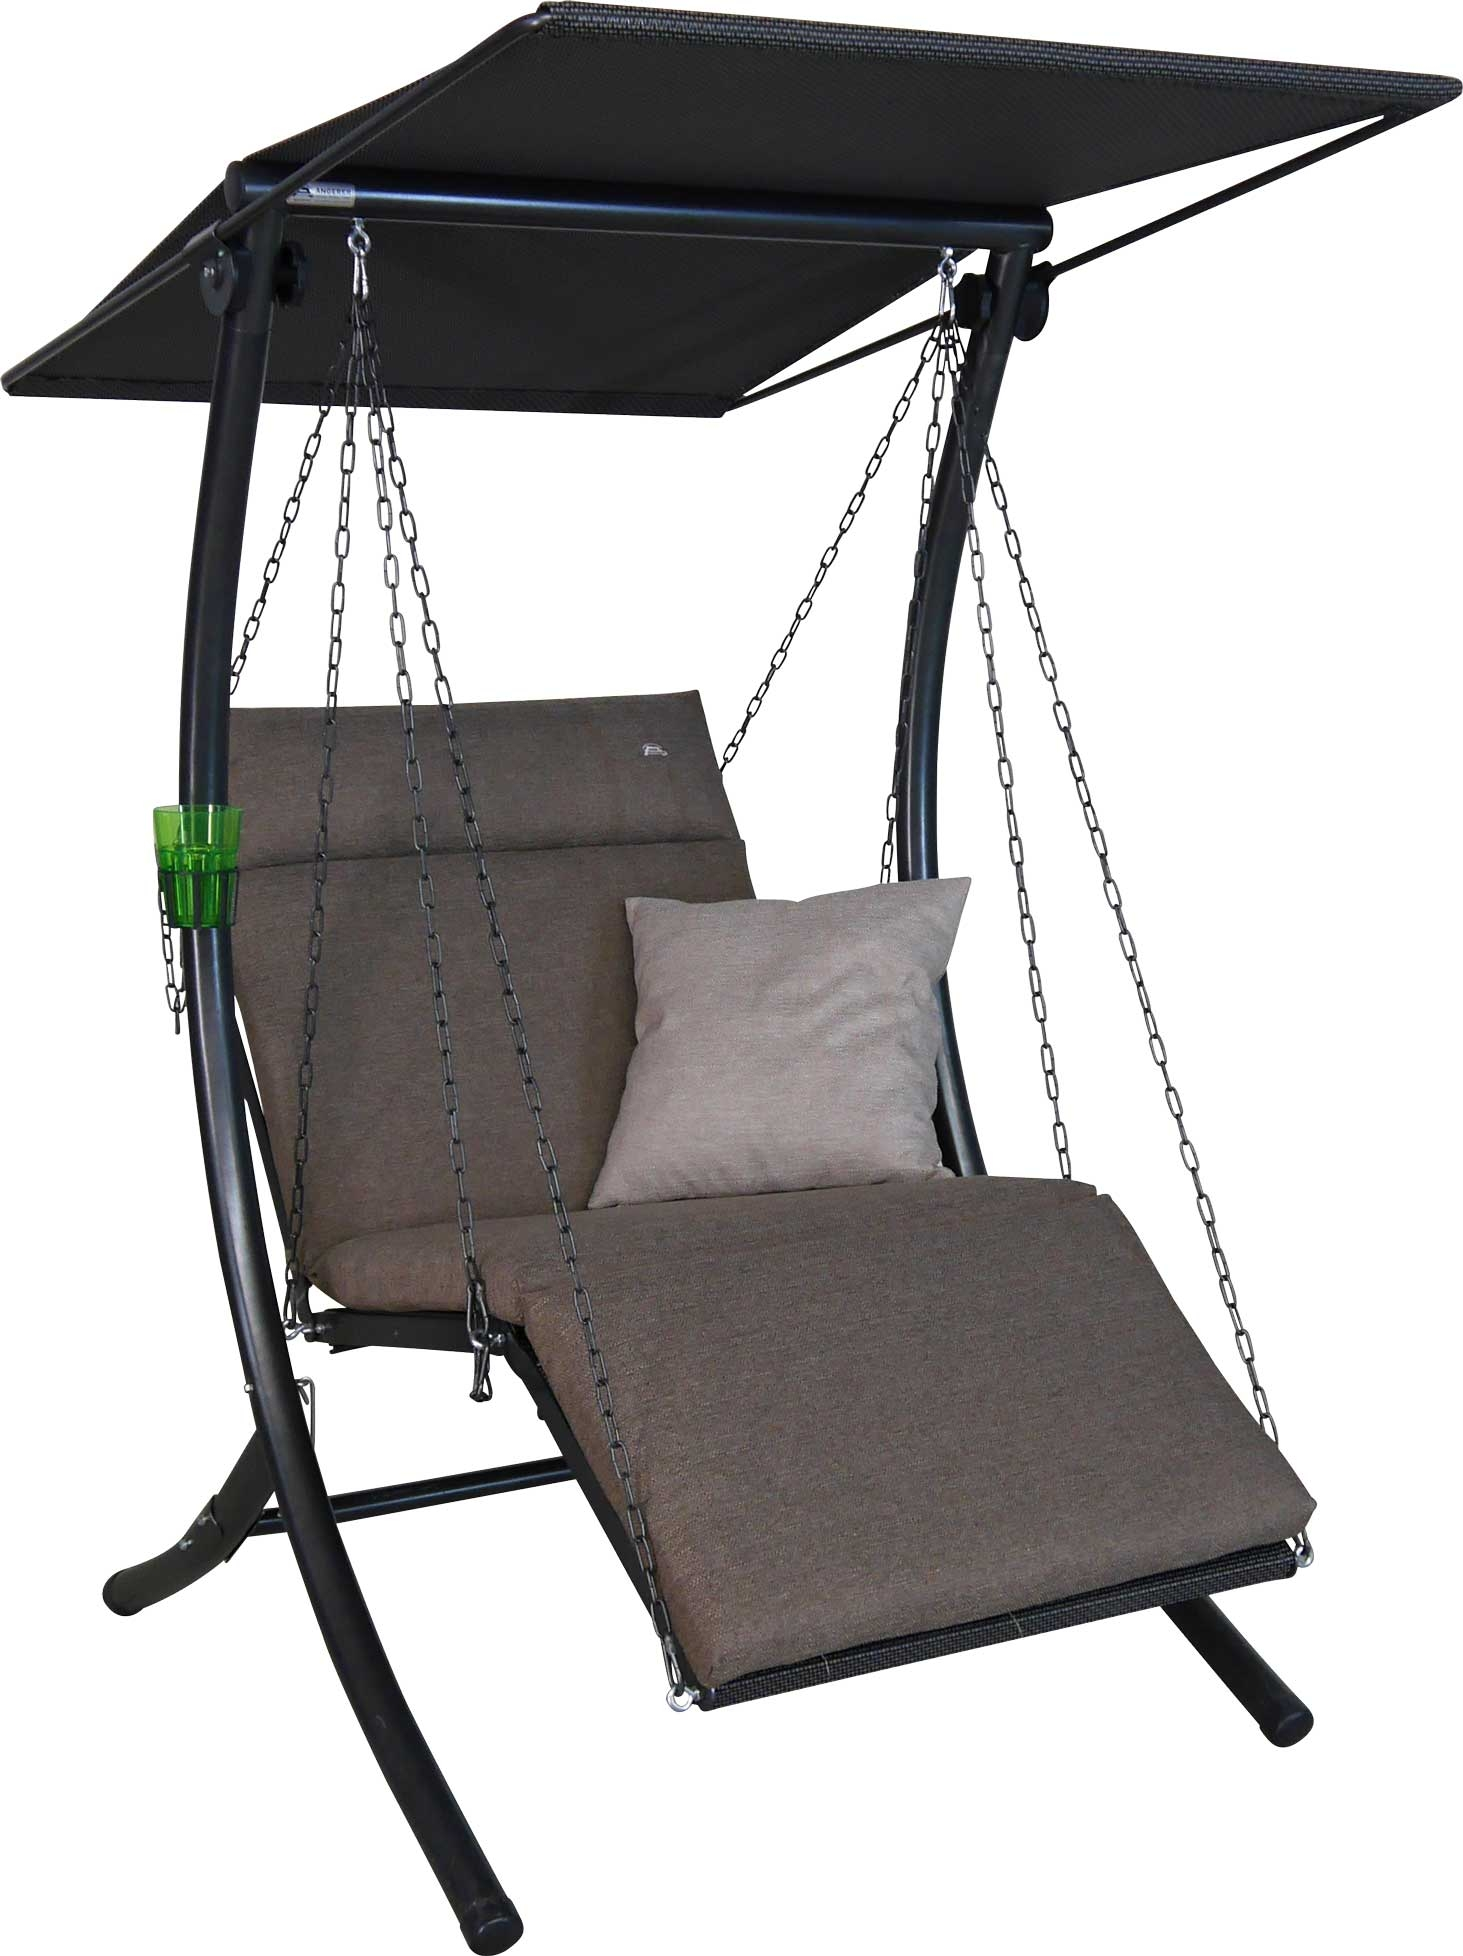 Angerer Hollywoodschaukel 1-Sitzer Swing Smart olive